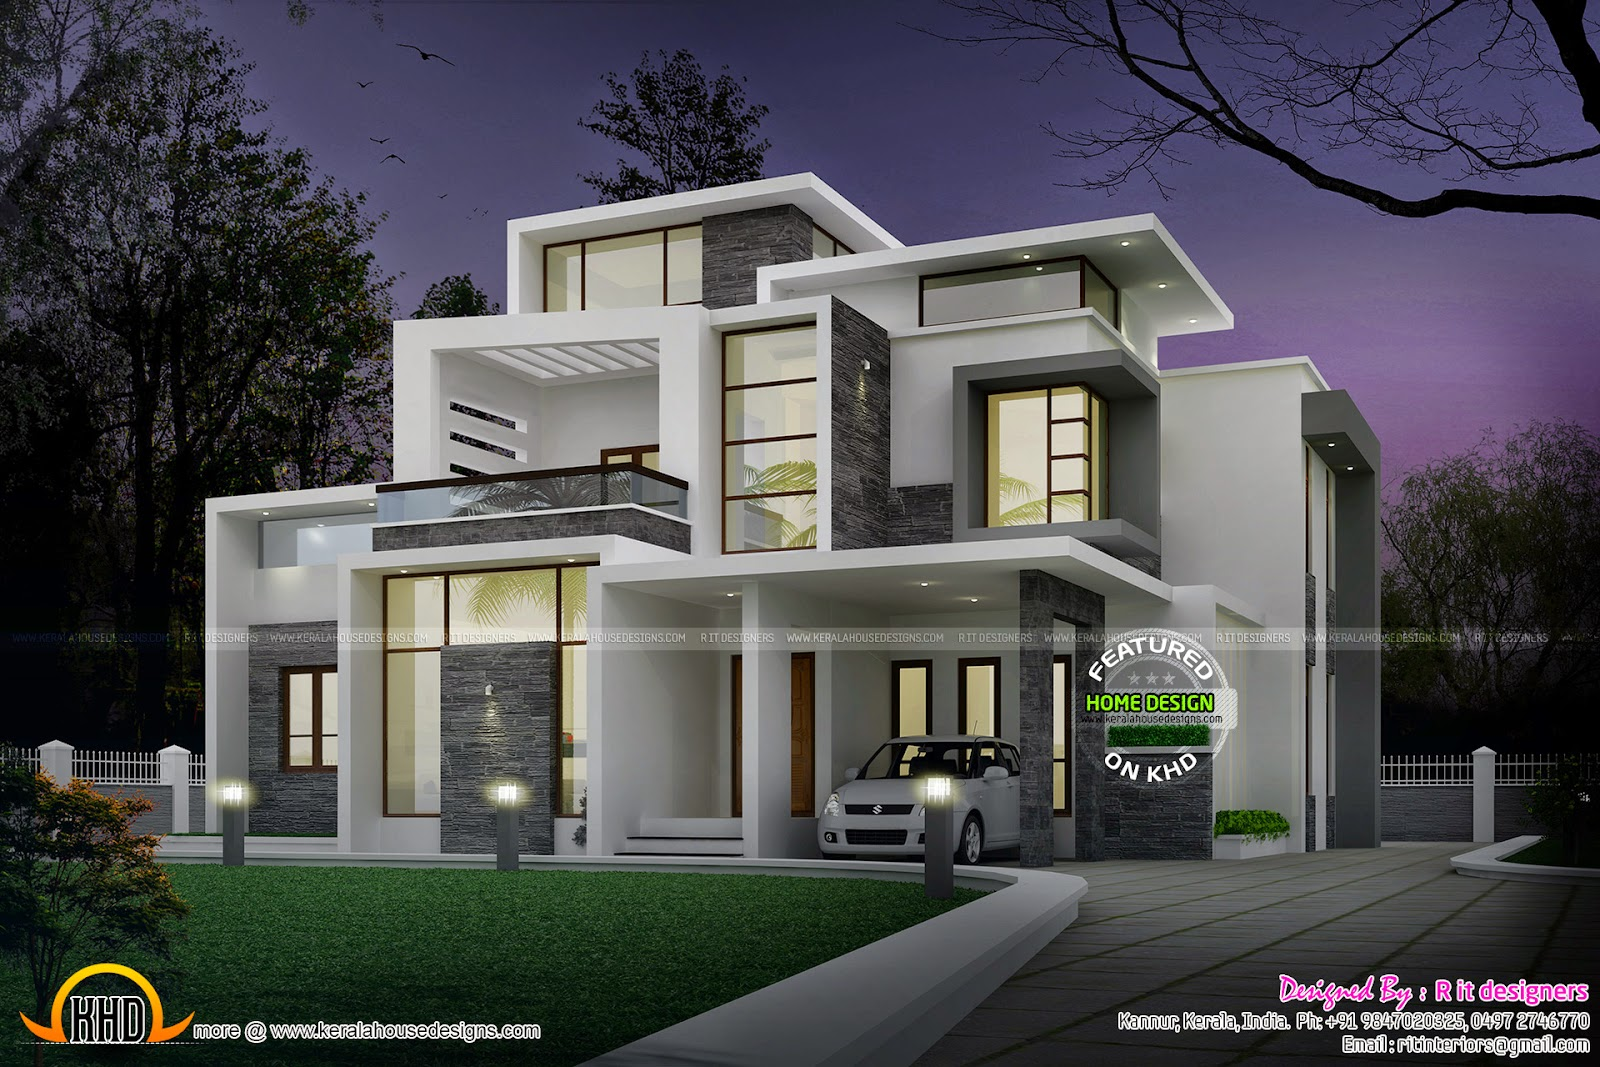 Grand contemporary home design kerala home design and for Modern home plans with photos